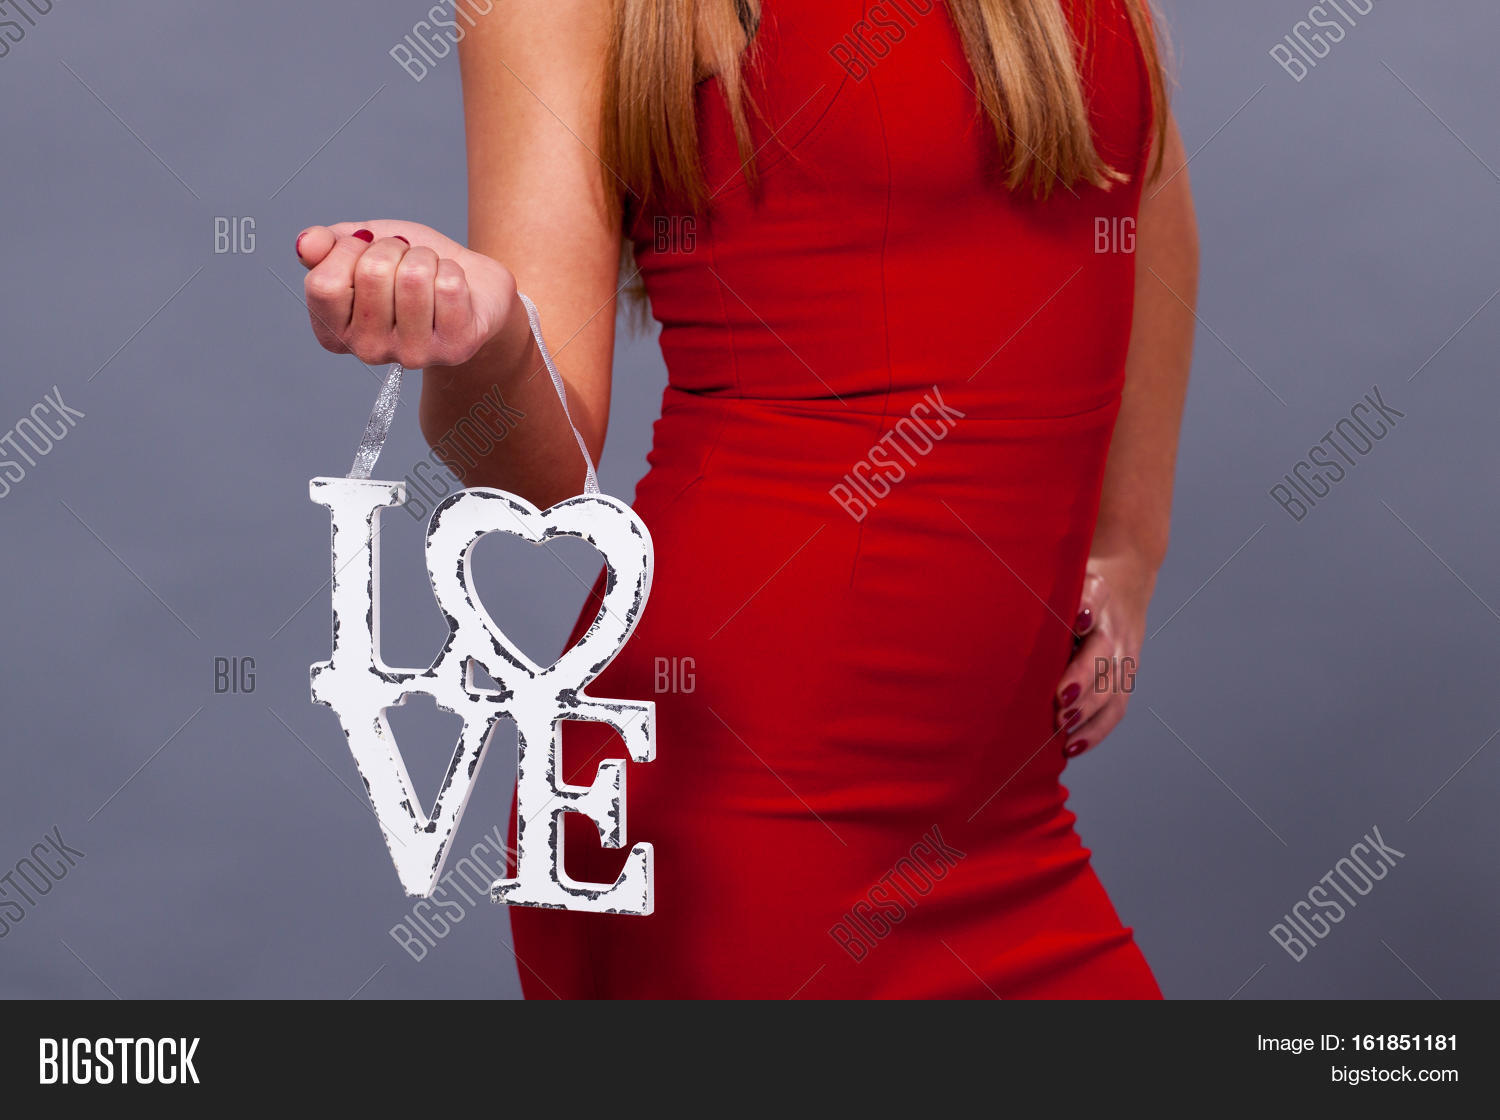 Valentines Day Woman Image Photo Free Trial Bigstock